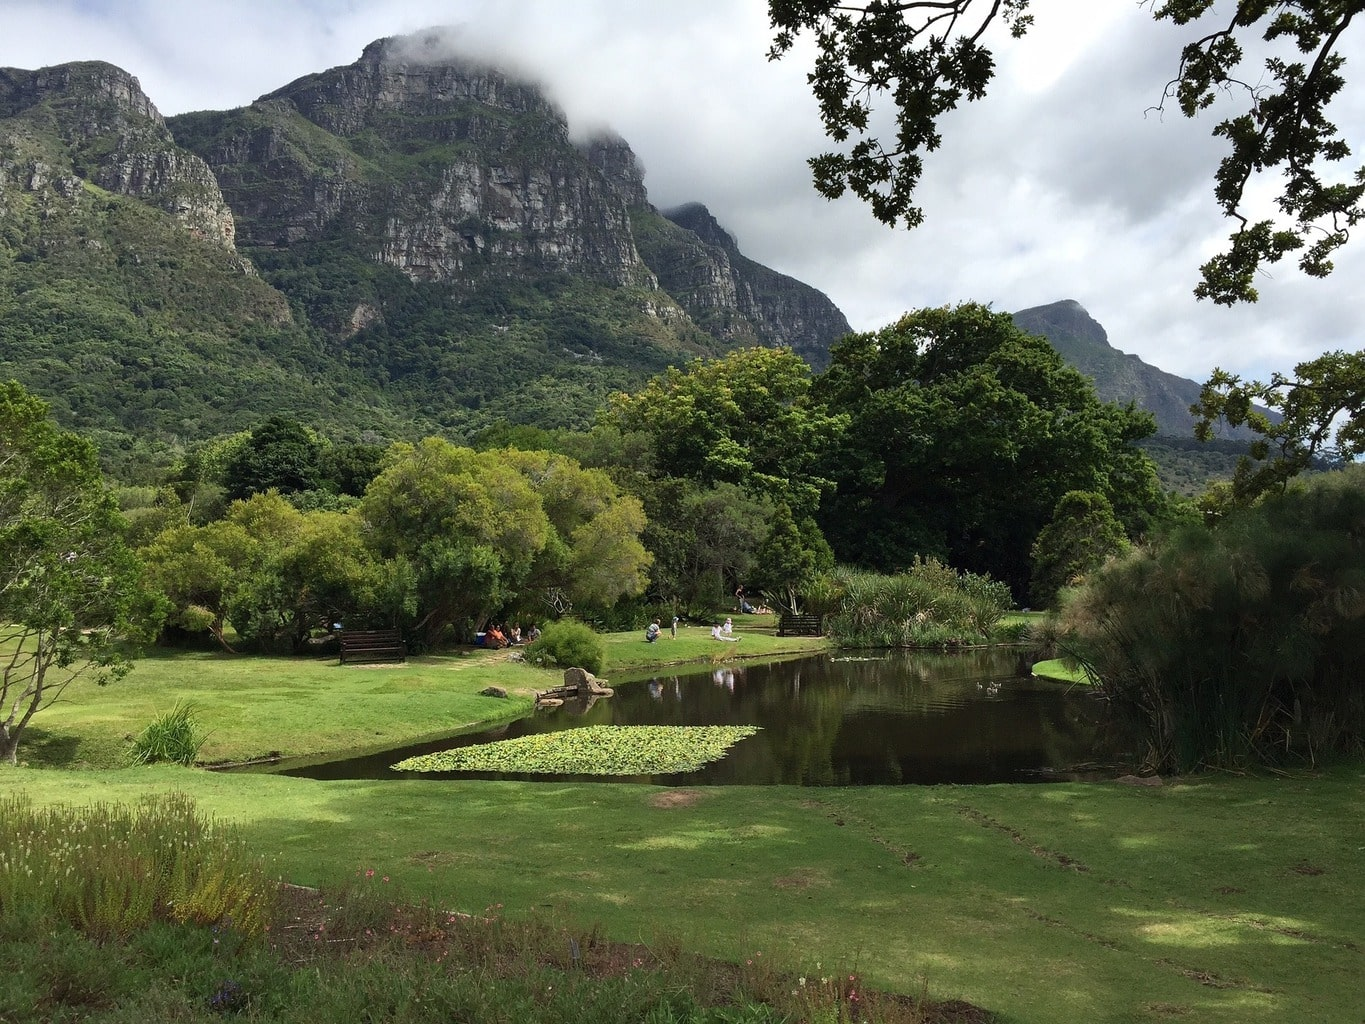 The beauty of nature at Kirstenbosch